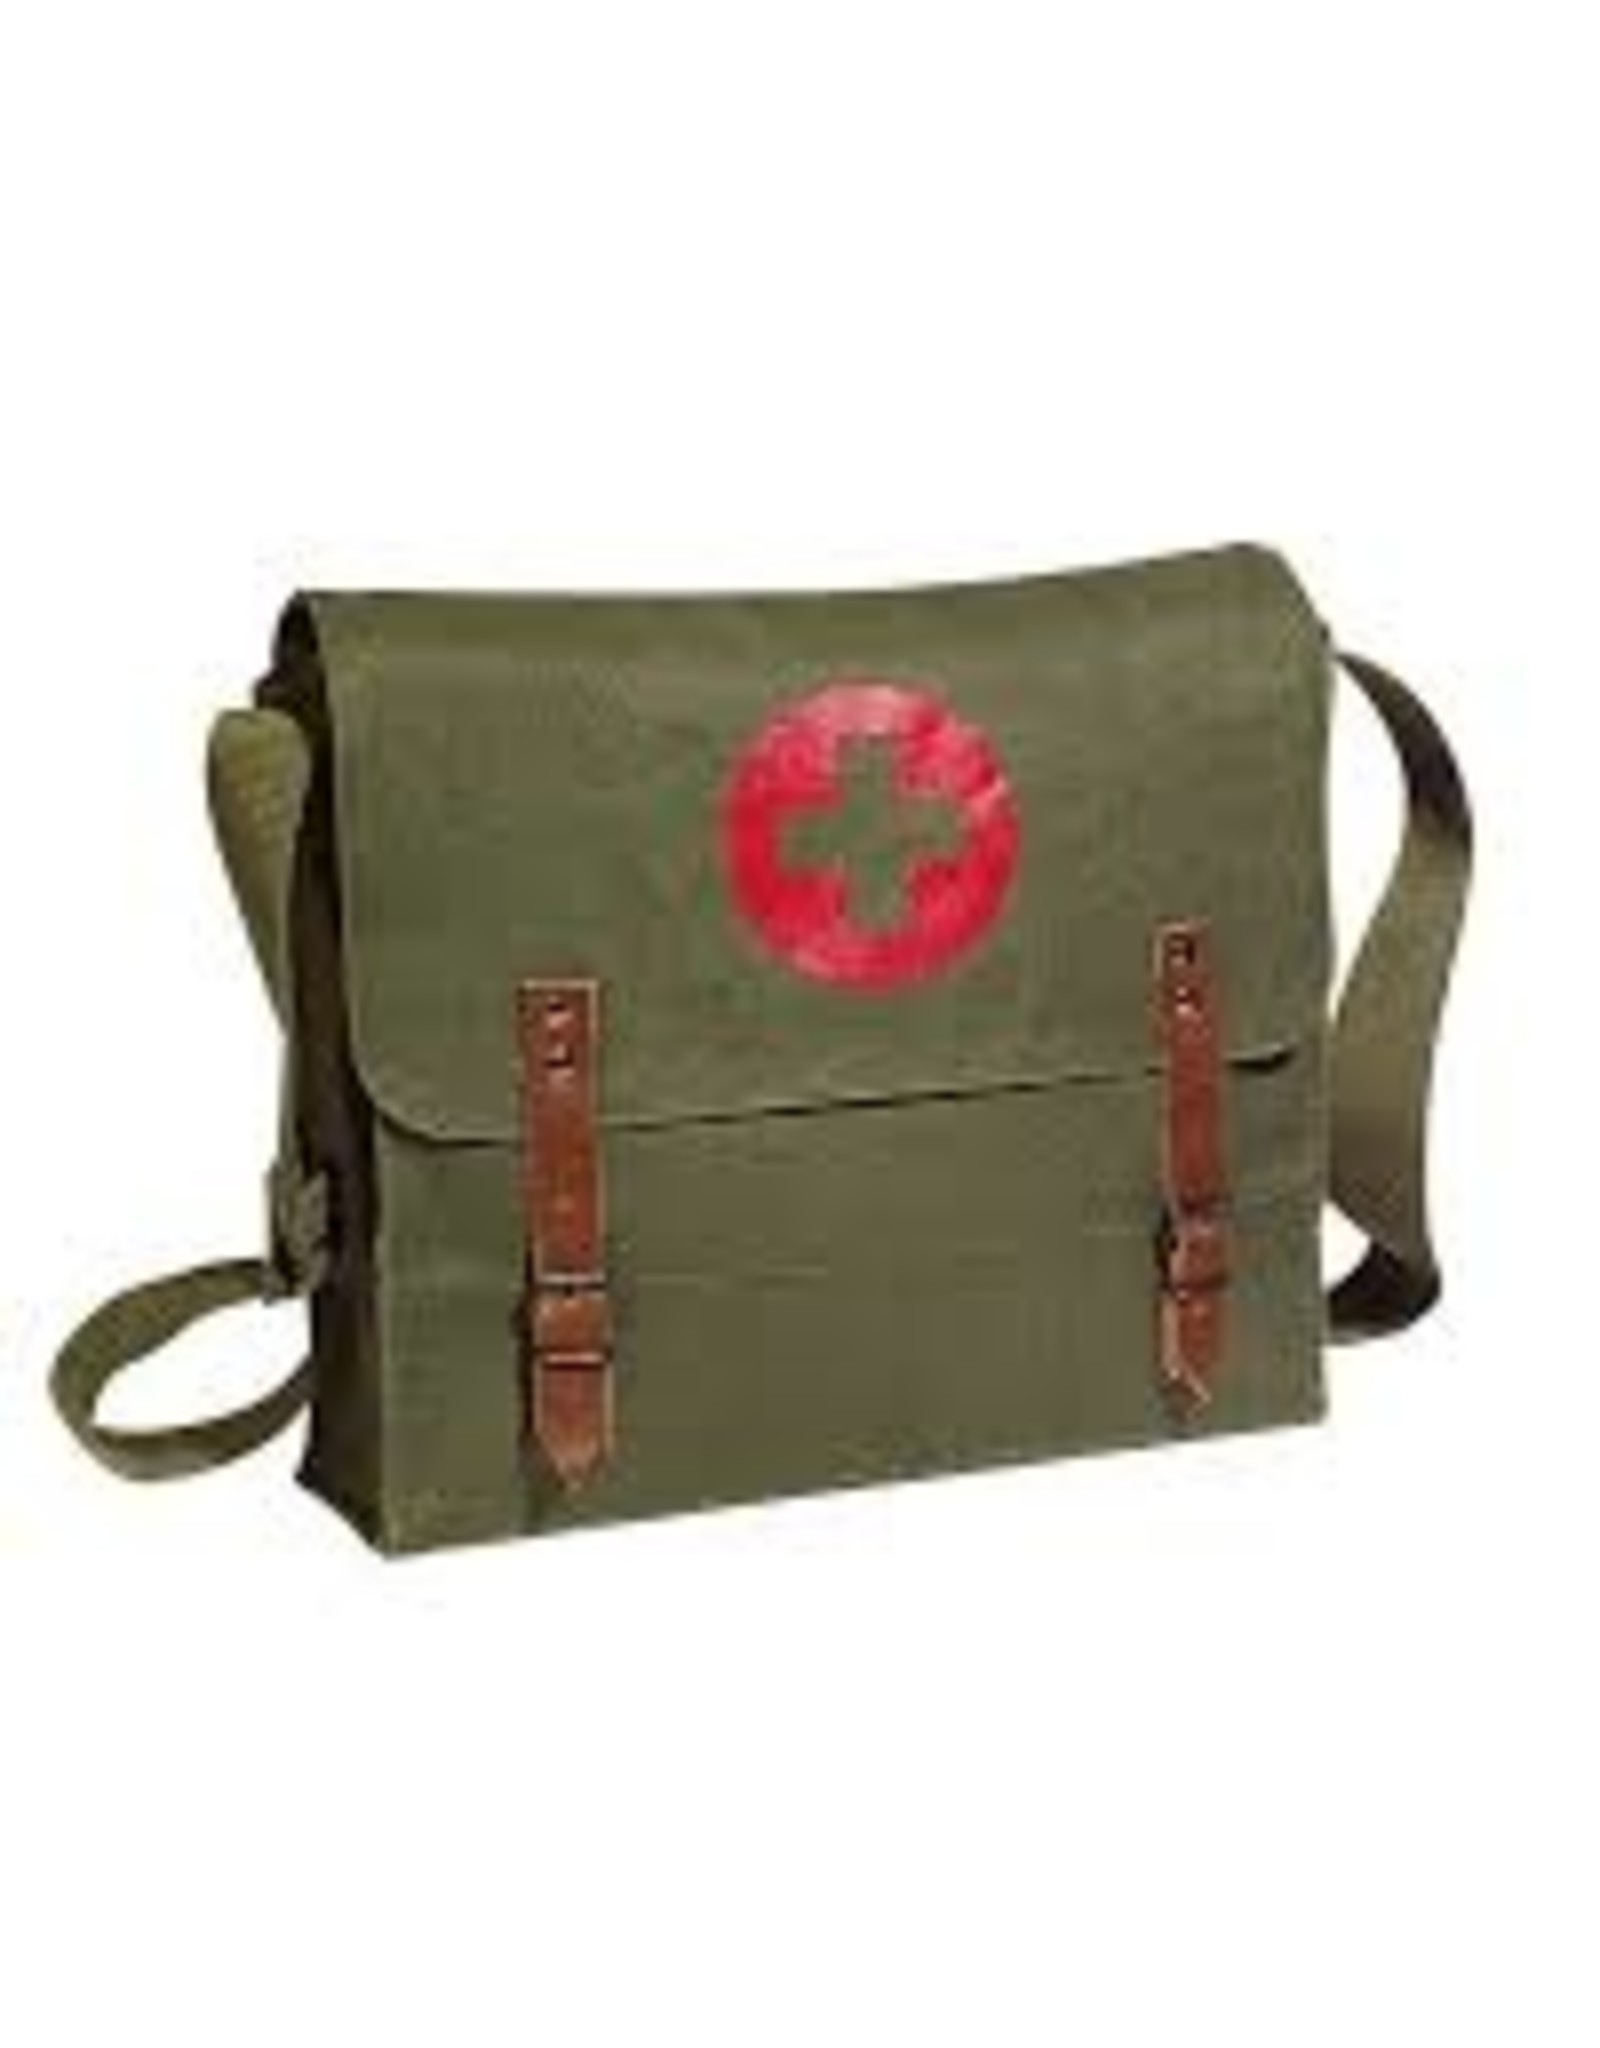 ROTHCO ROTHCO CANVAS NATO MEDIC BAG